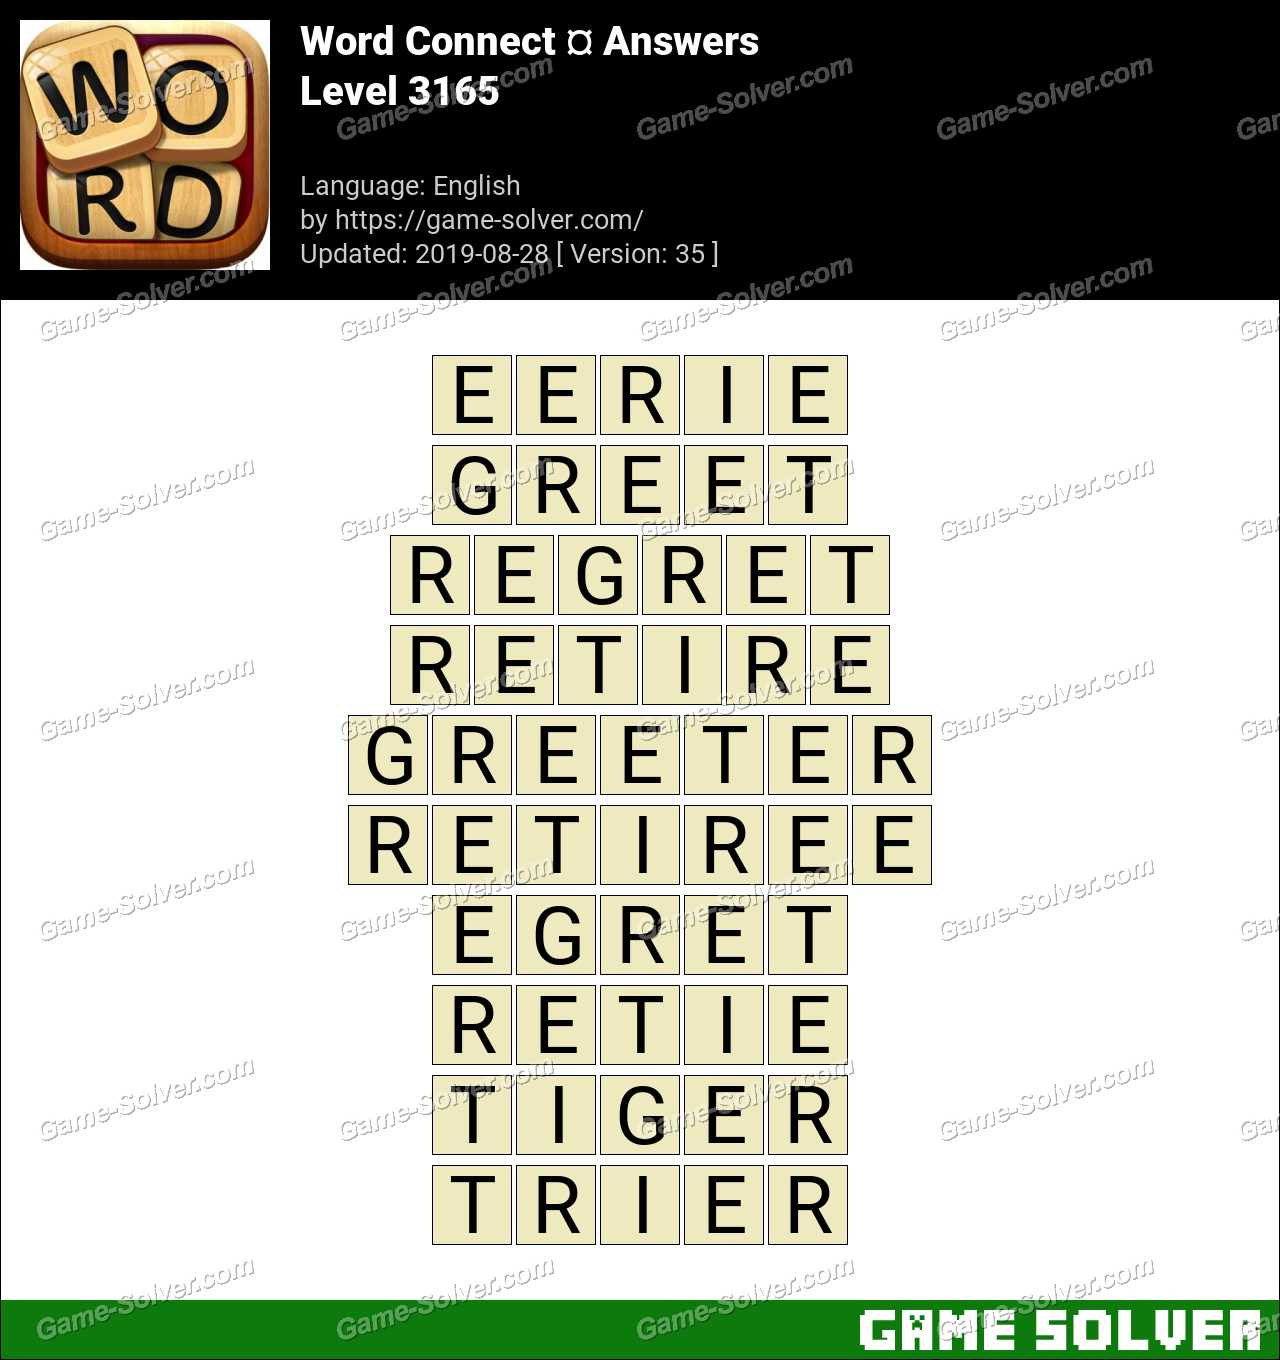 Word Connect Level 3165 Answers